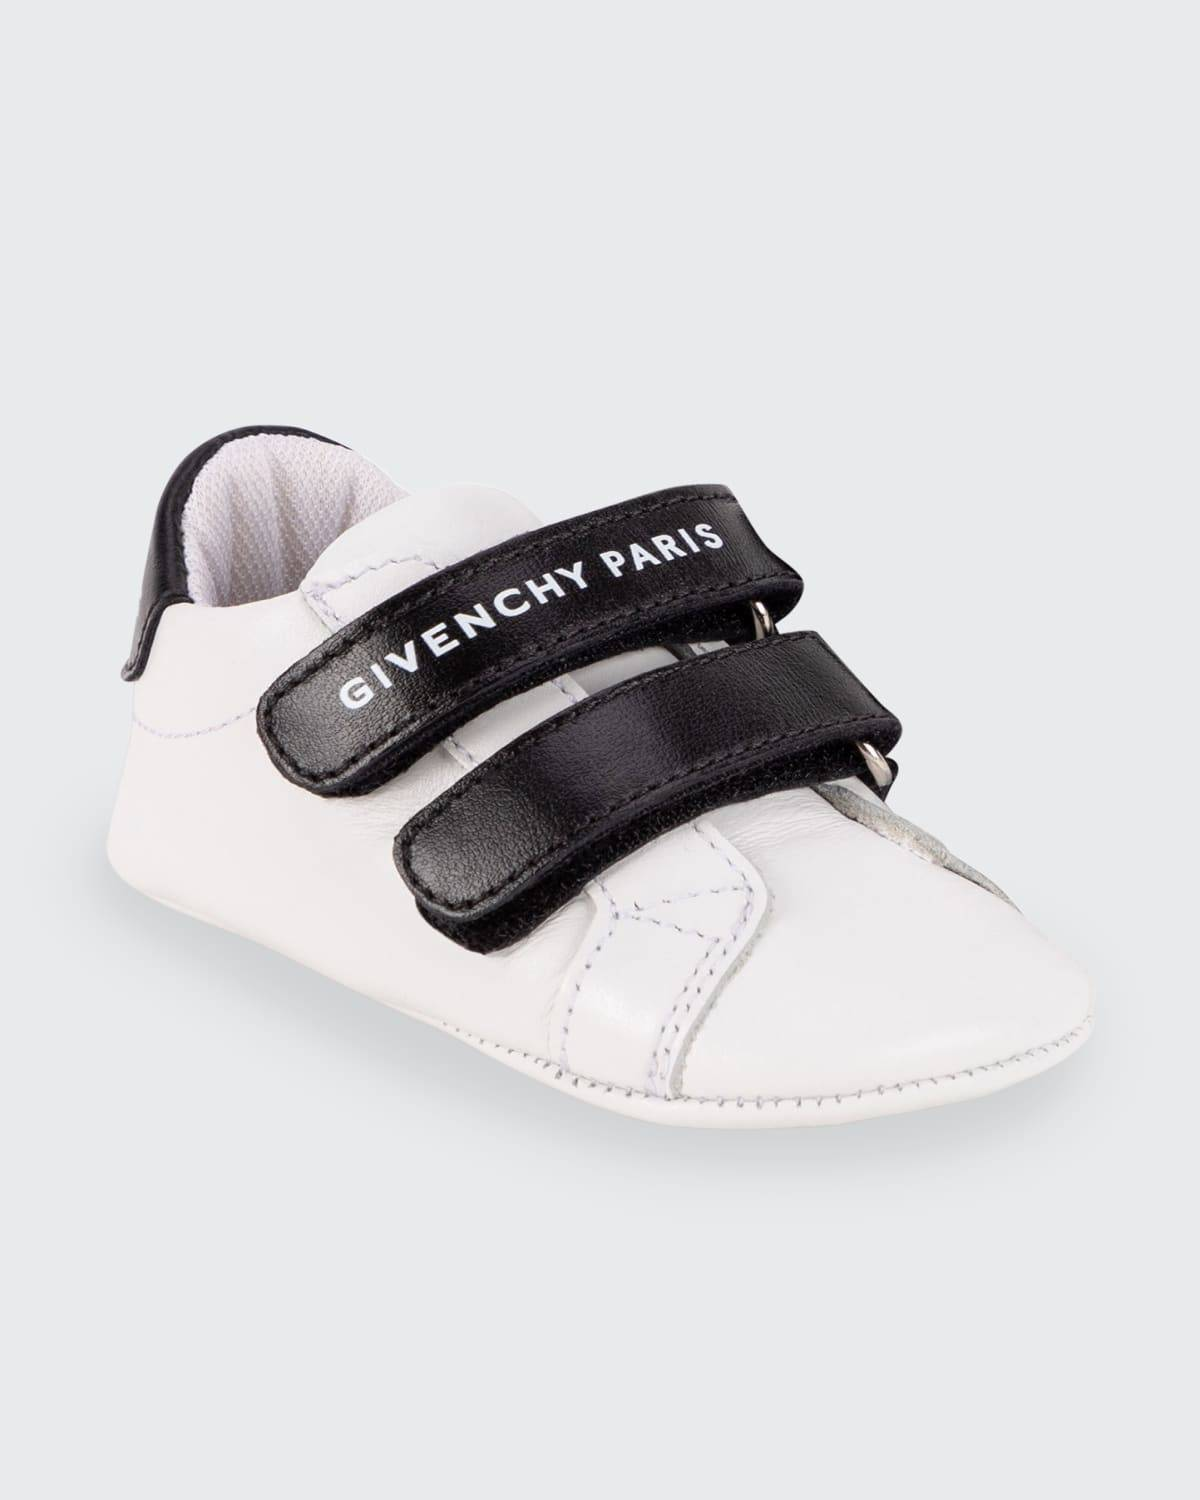 Kid's Bicolor Leather Low-Top Sneakers, Baby Sizes 3M-12M  - 10B WHITE - 10B WHITE - Size: 19EU (9-1